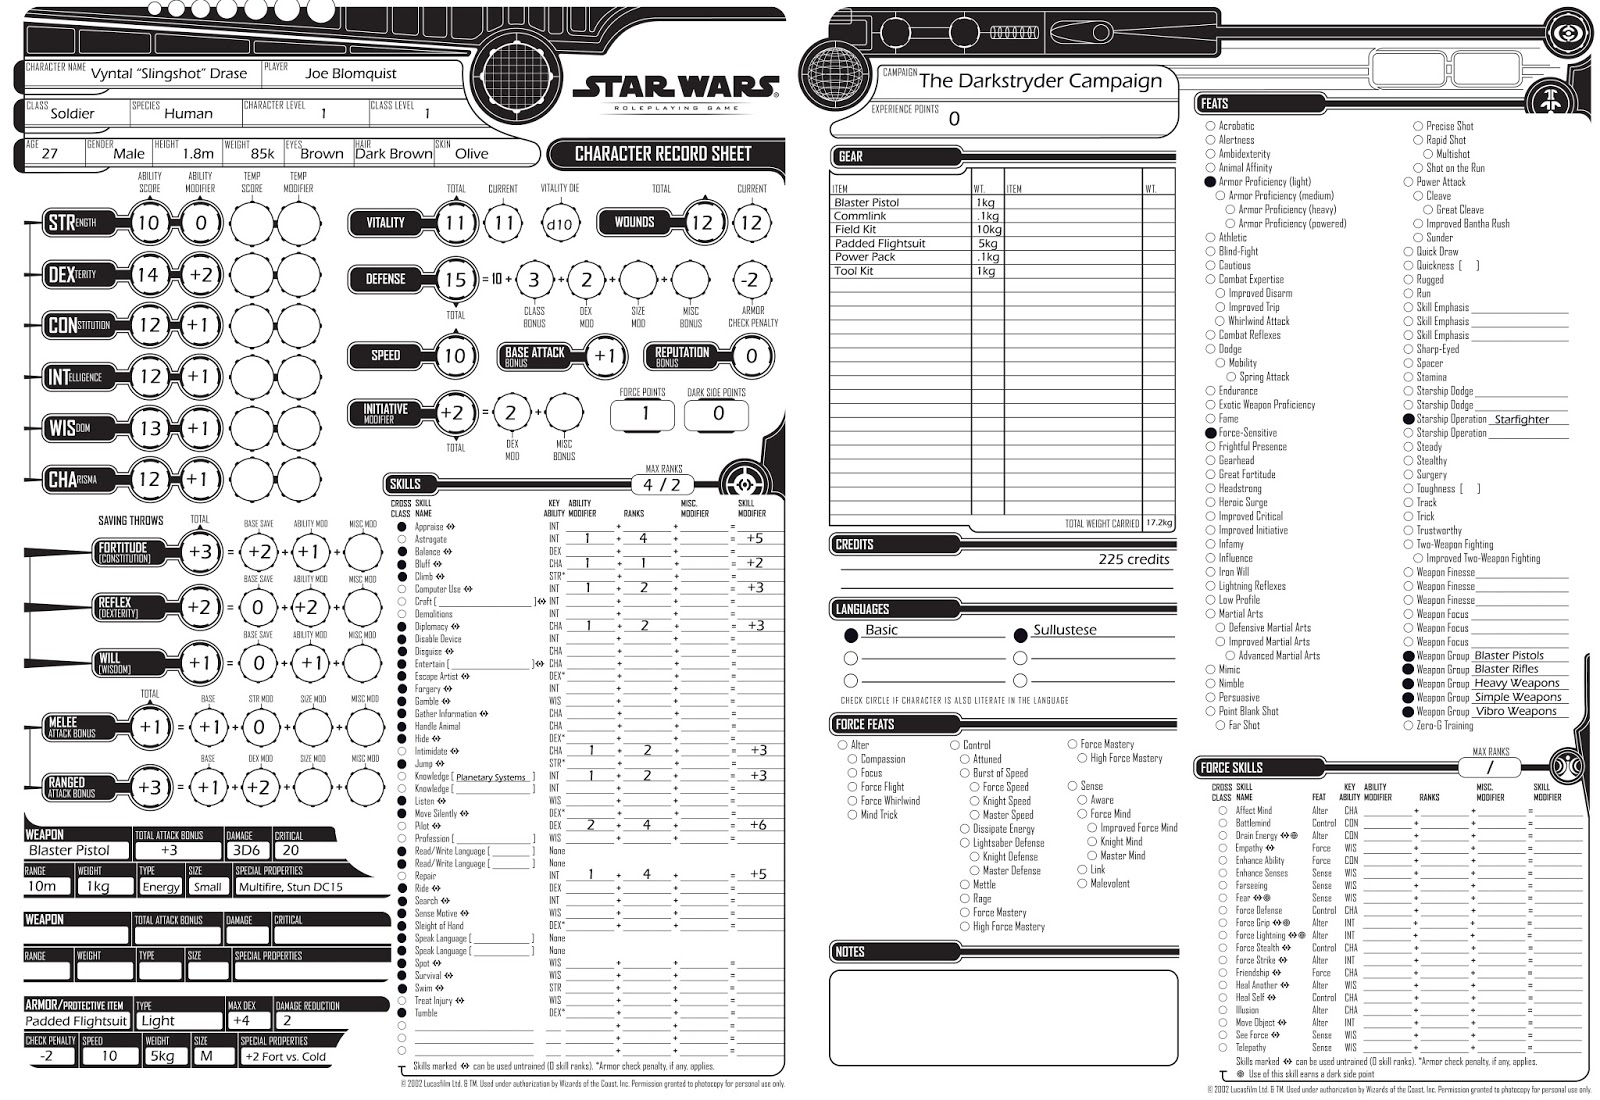 Star Wars Roleplaying Game Revised Core Rulebook Character